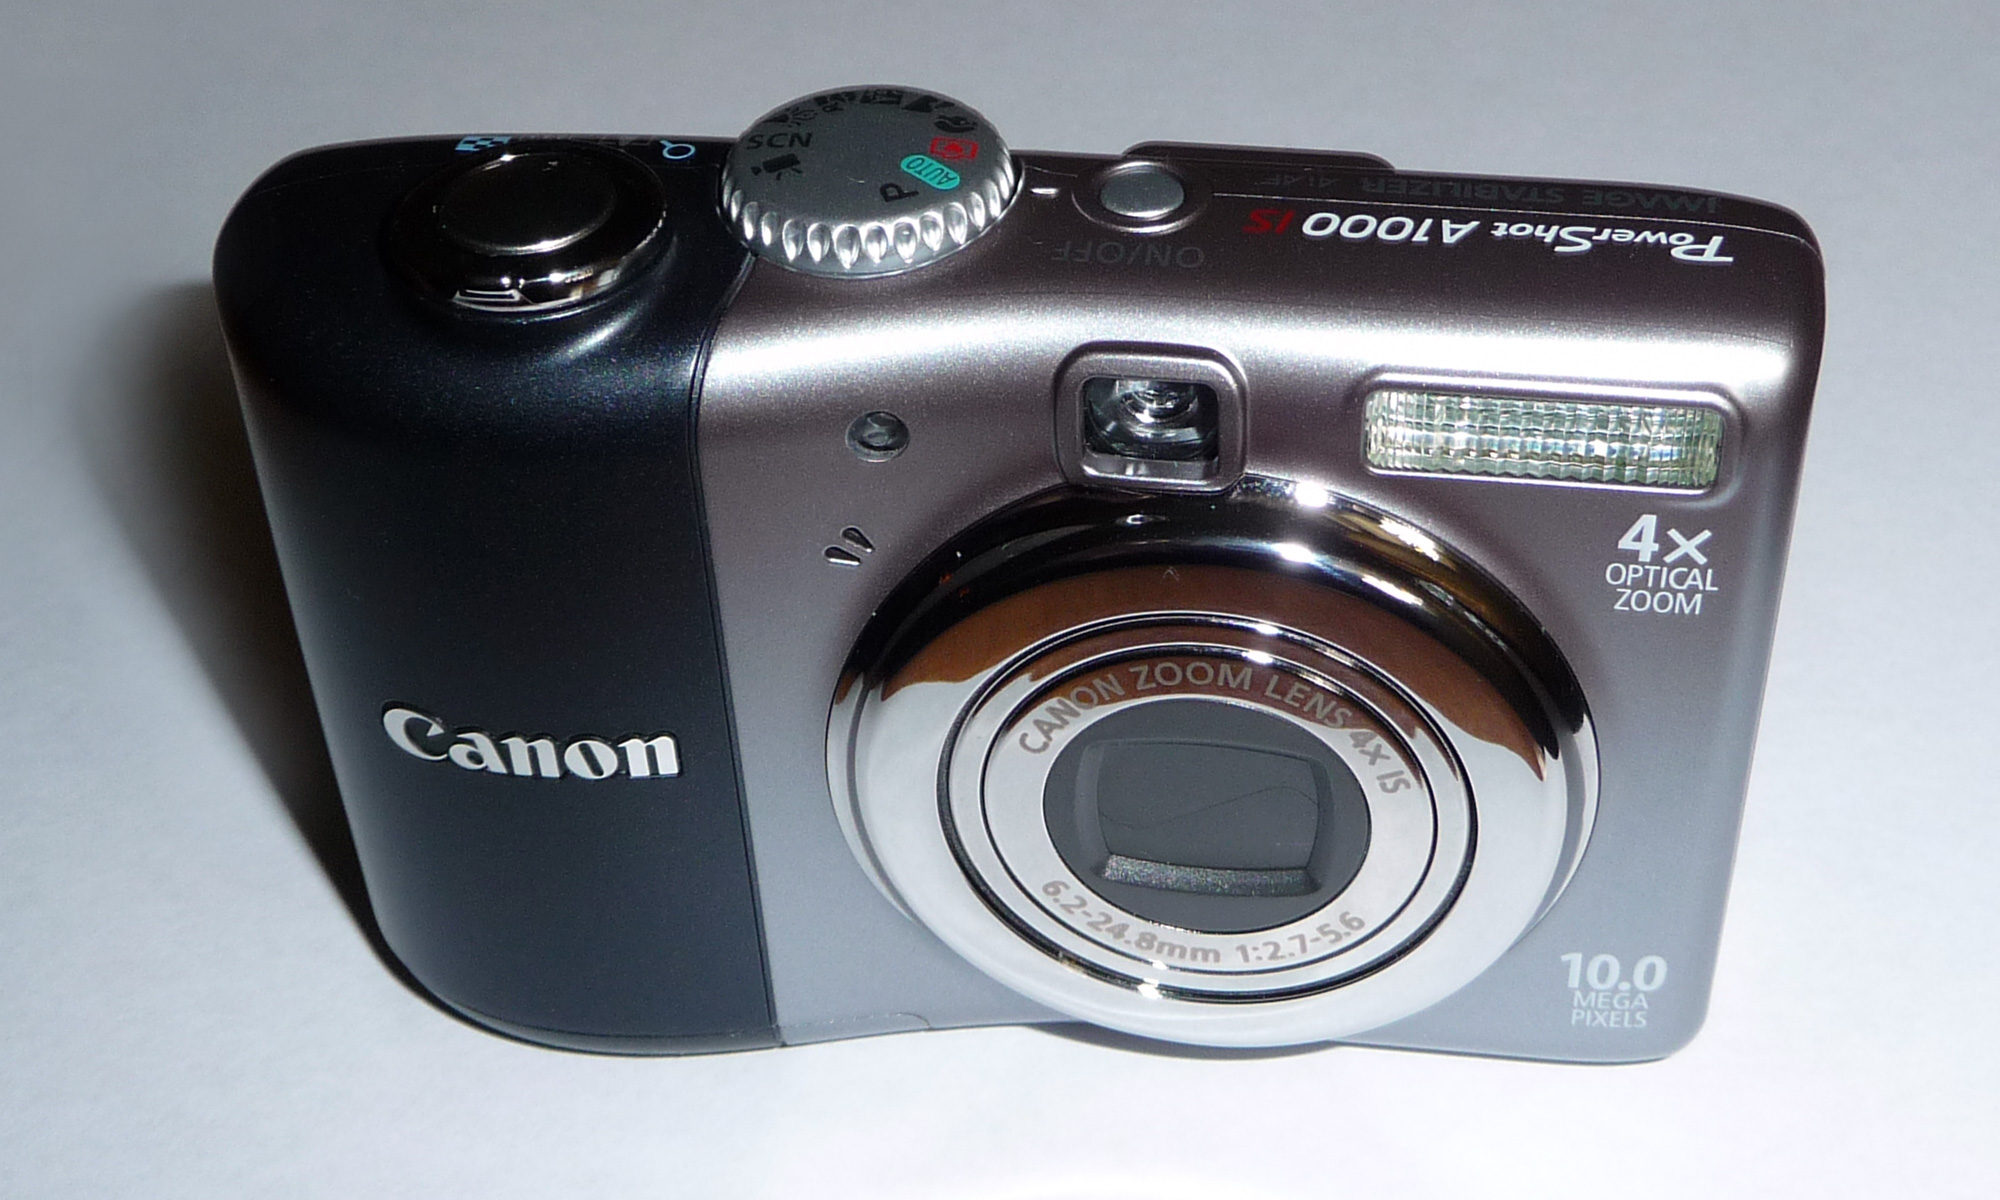 CANON POWERSHOT A1000 IS DRIVERS FOR WINDOWS VISTA